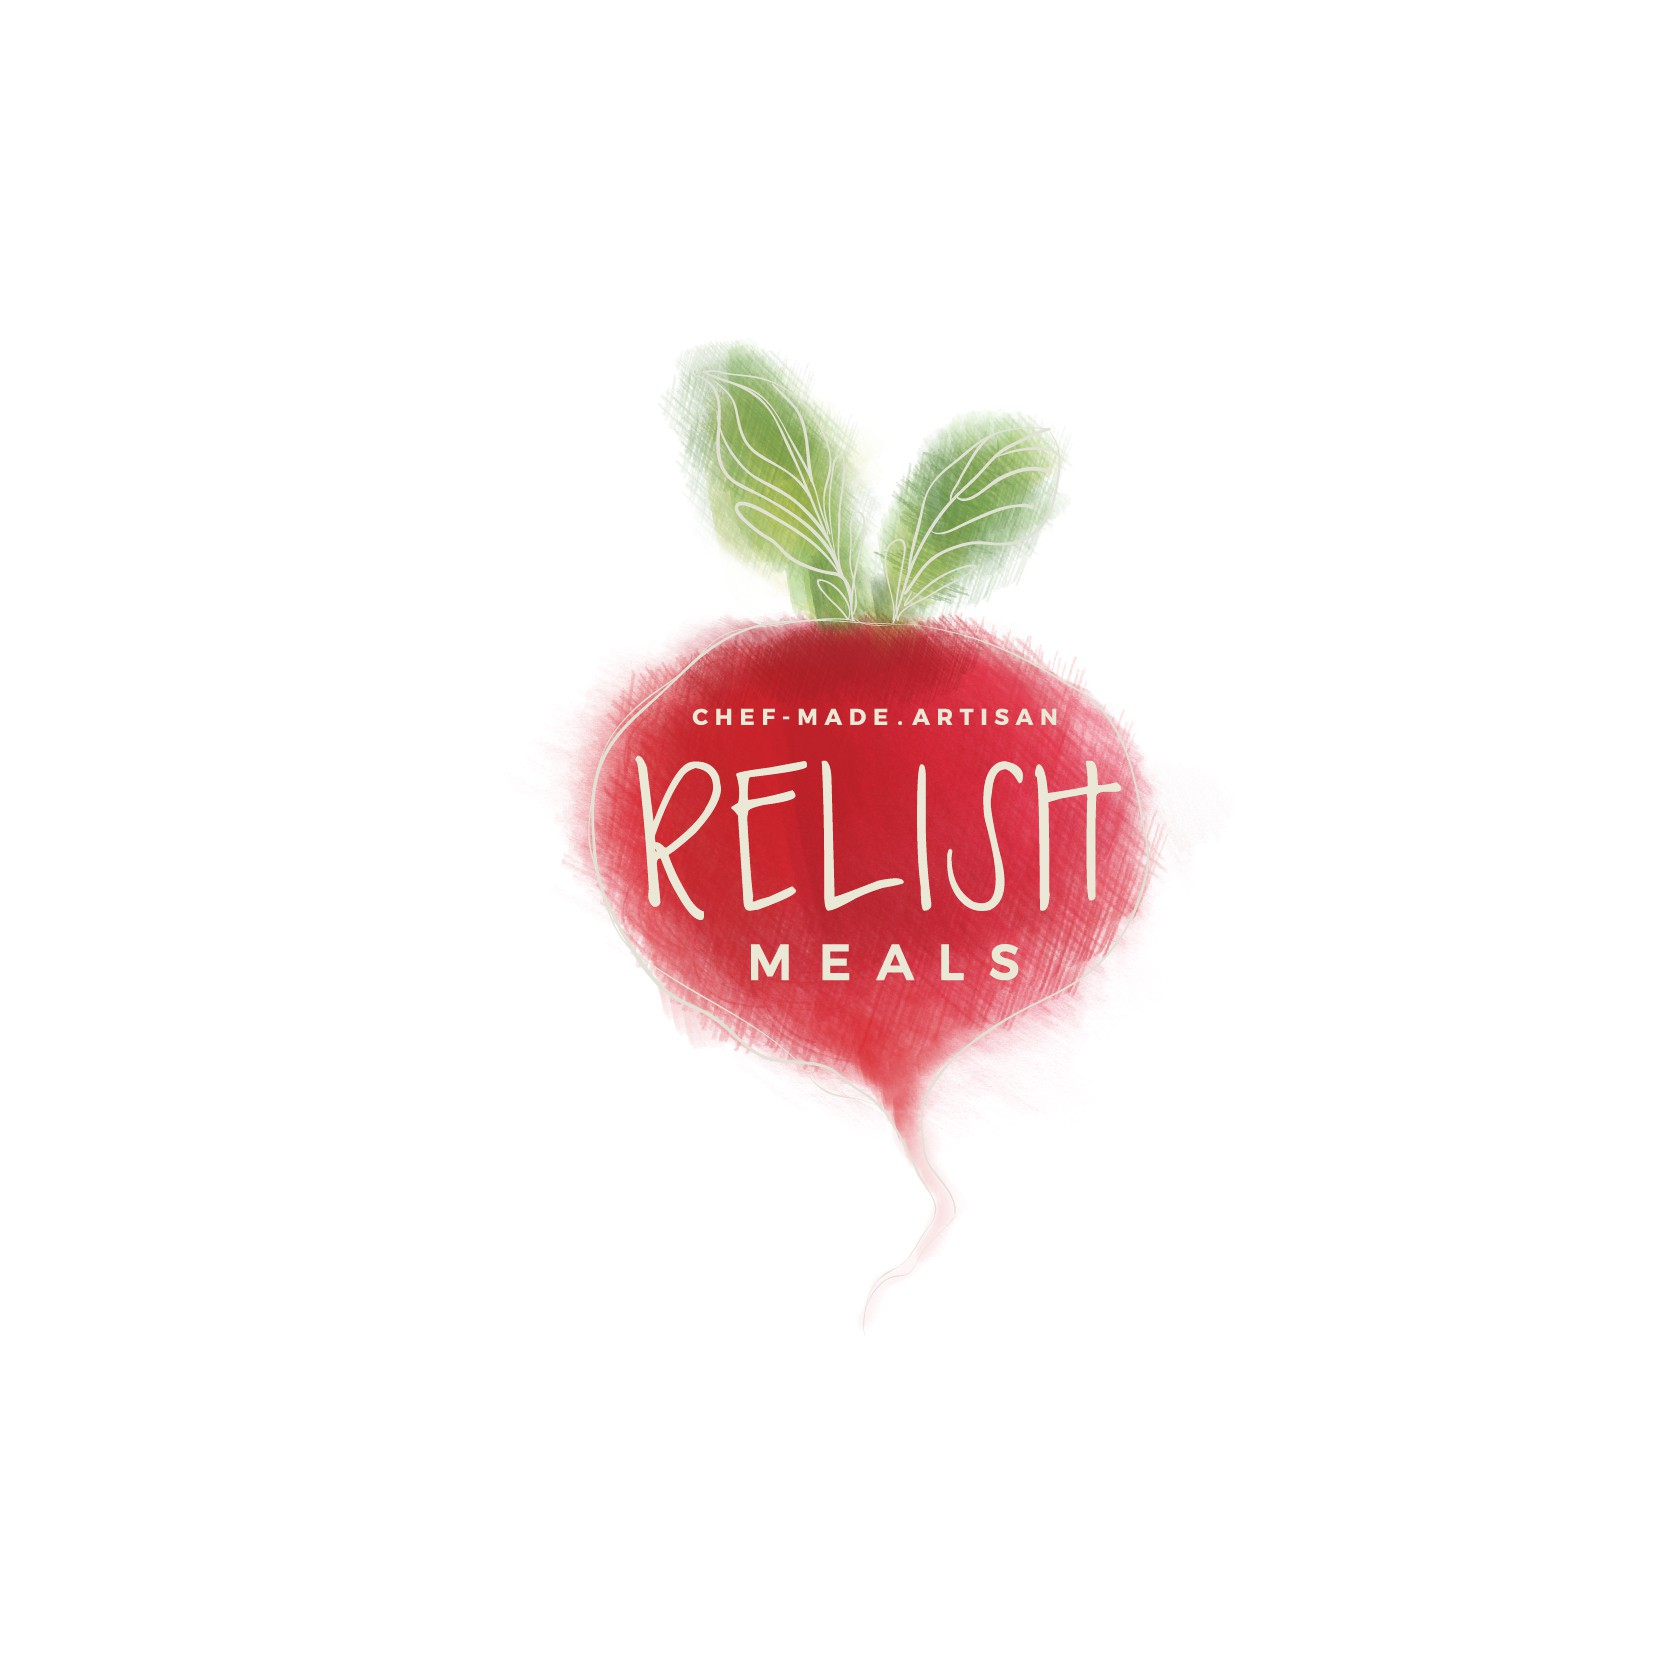 Relish Meals - create a logo that can also be incorporated into design features/backgrounds